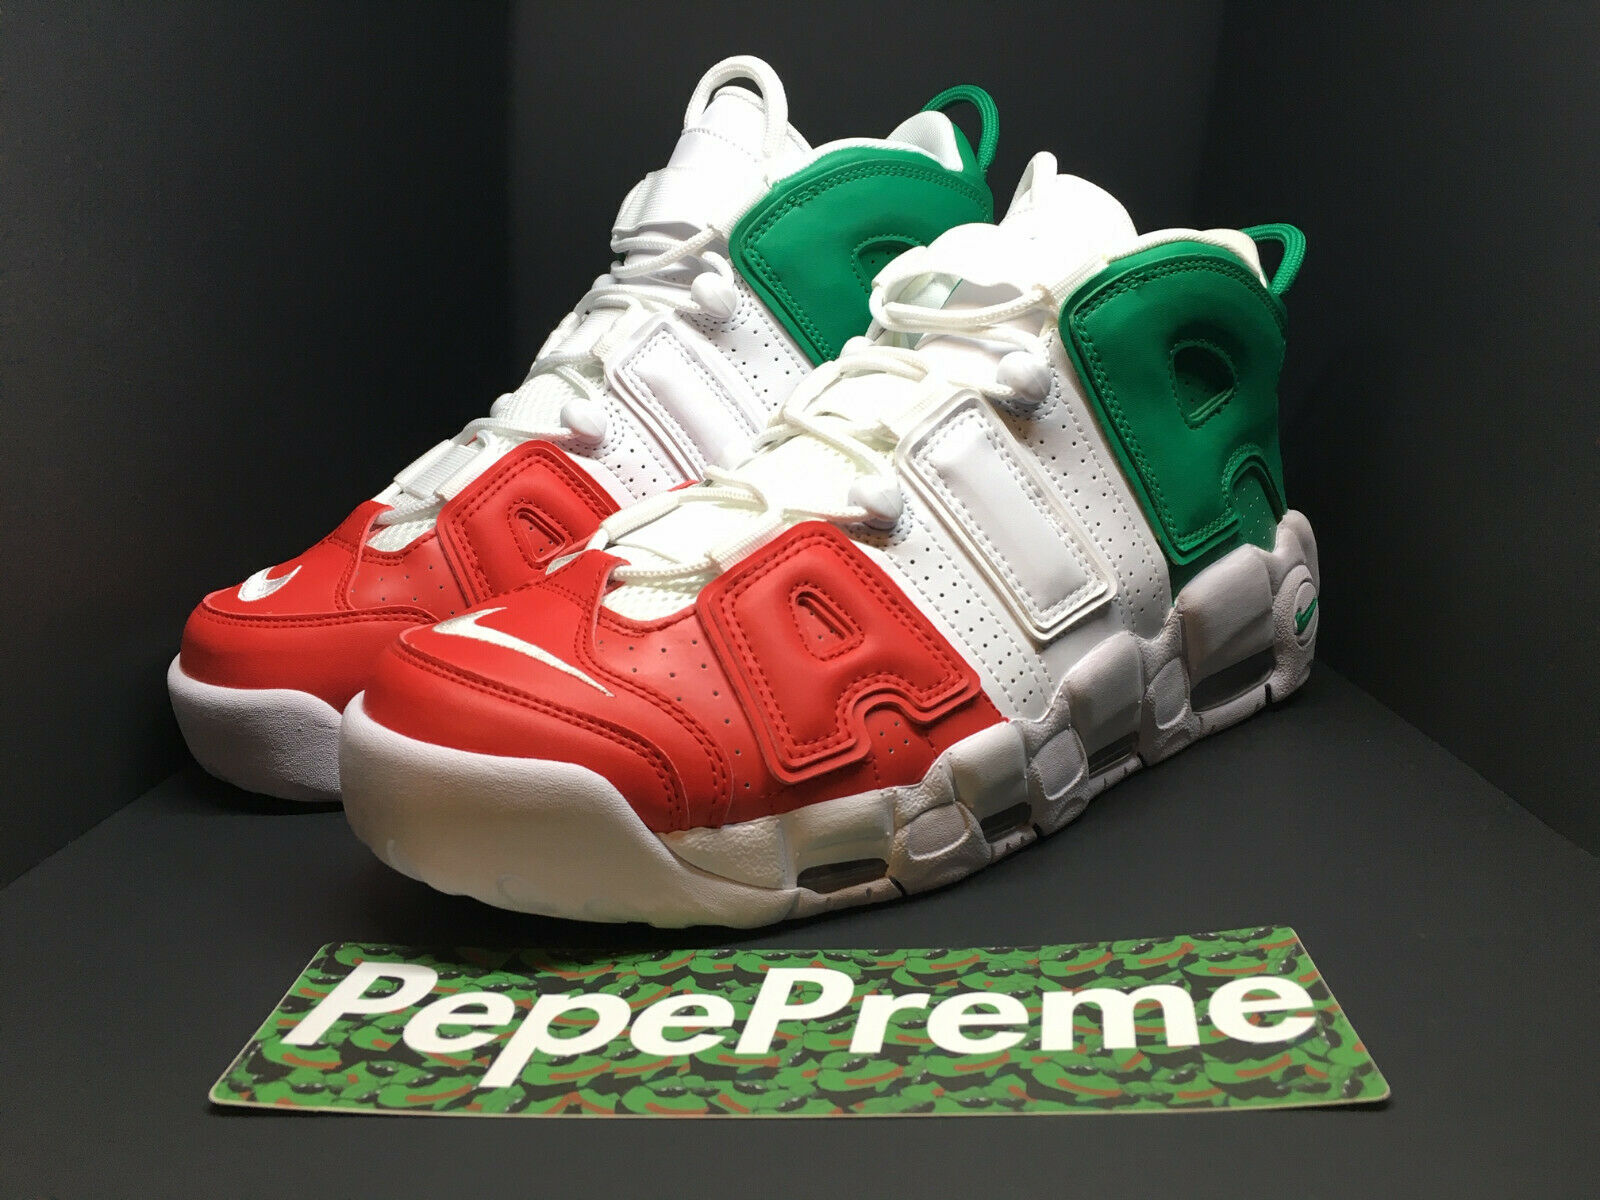 NEW Nike Air More Uptempo 96  QS Milan Europe Pack AV3811 600 Sz 11.5